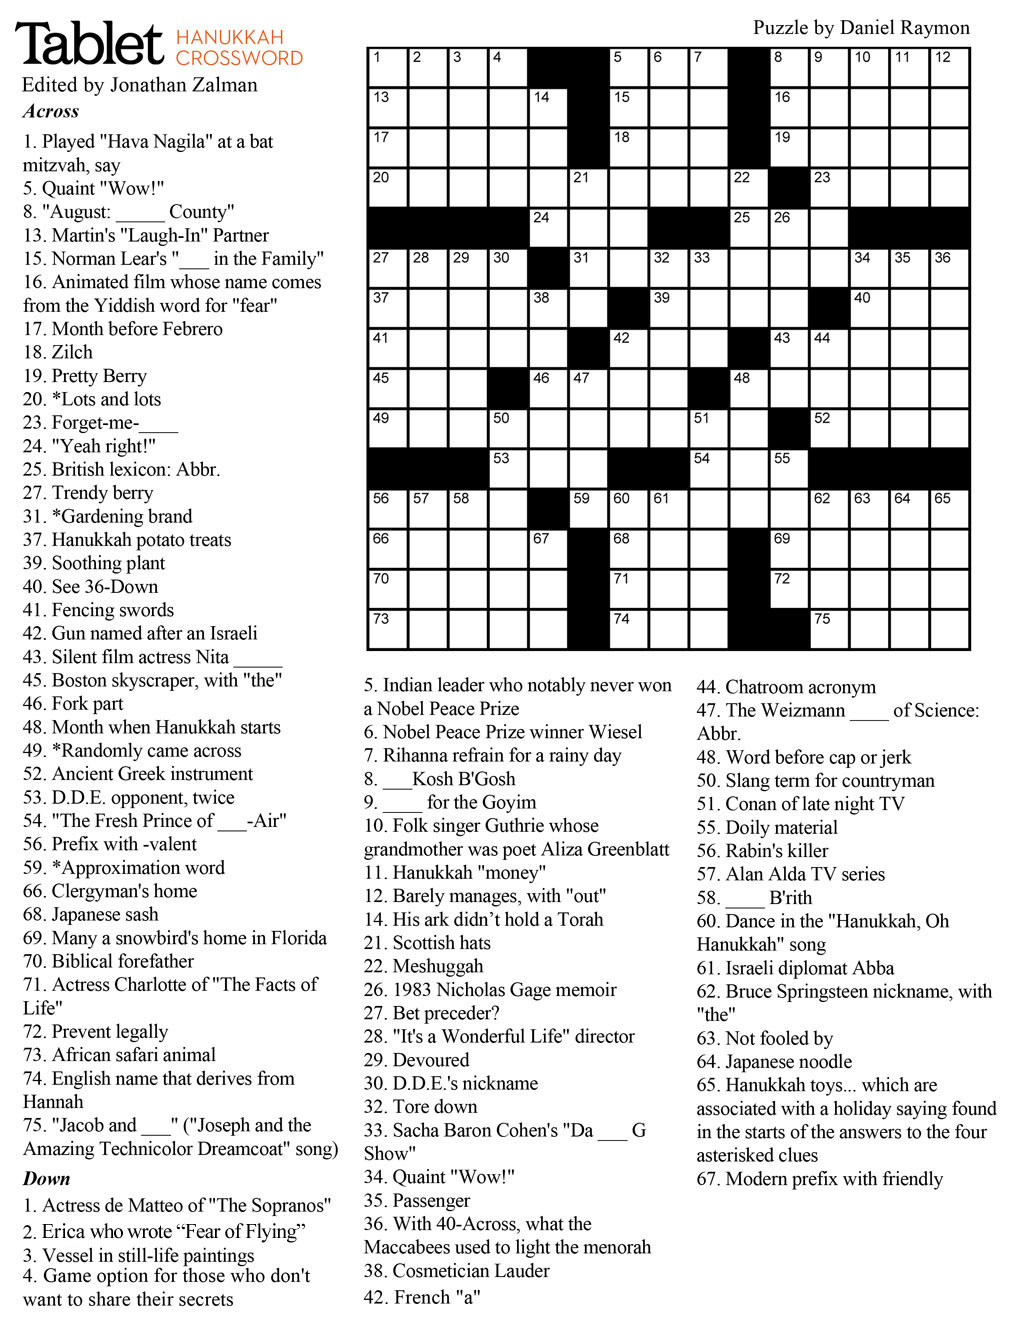 Wind Down With Our Hanukkah Crossword Puzzle! – Tablet Magazine - Printable Crossword Searches For Adults